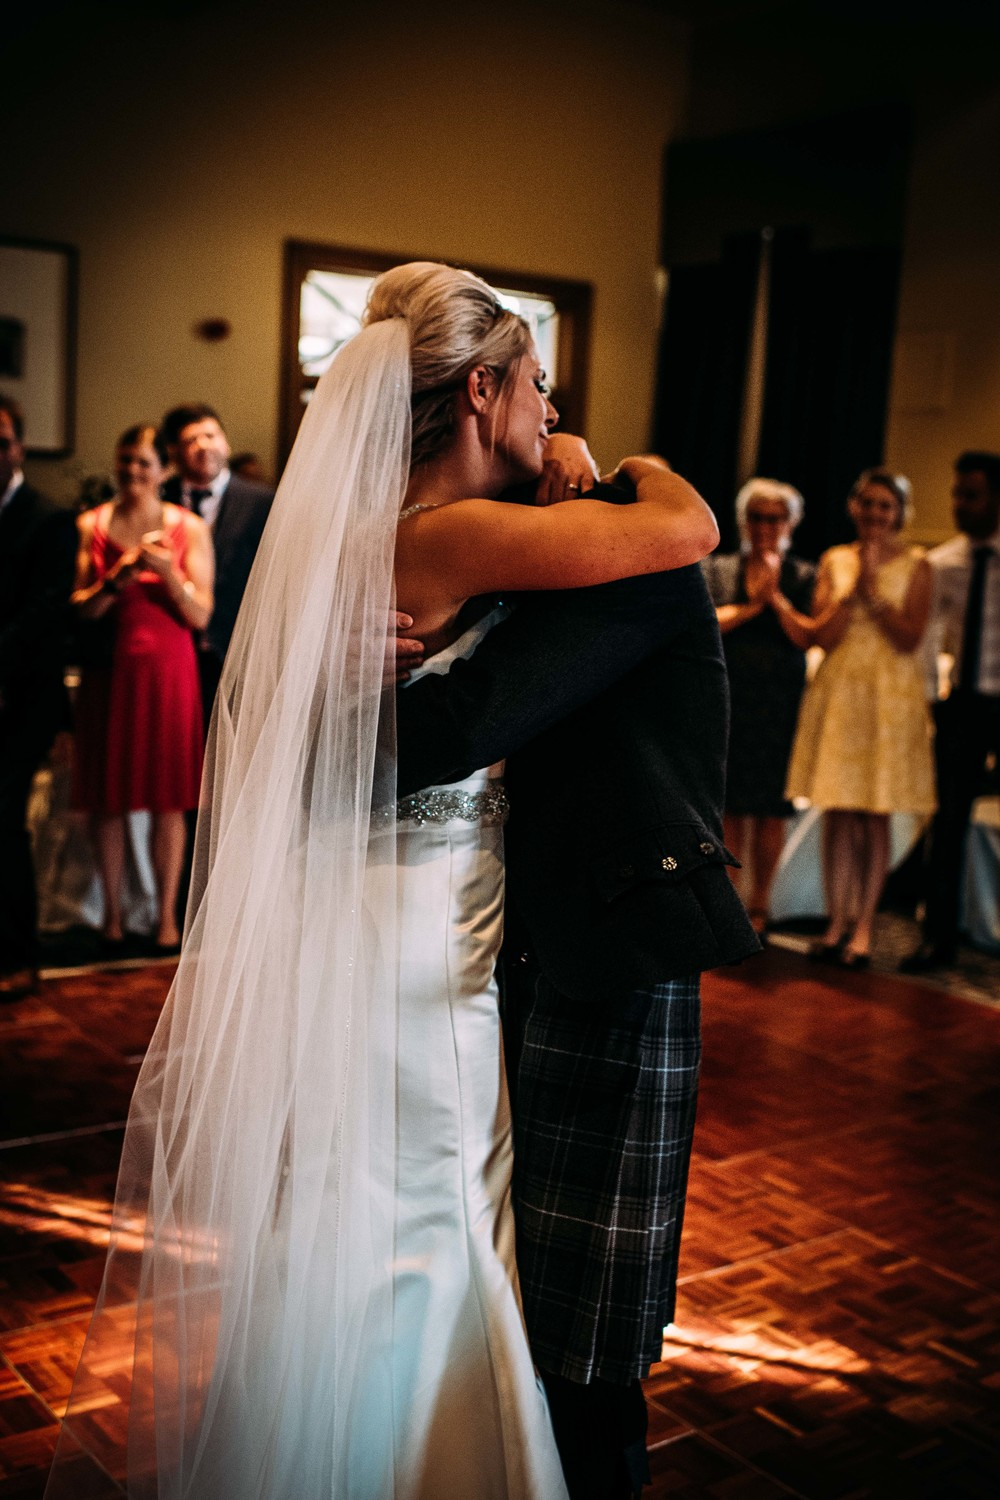 Dumfries-Wedding-Tom-Cairns-Photography-Easterbrook-Hall-Blush-Pink-Wedding-Details 67